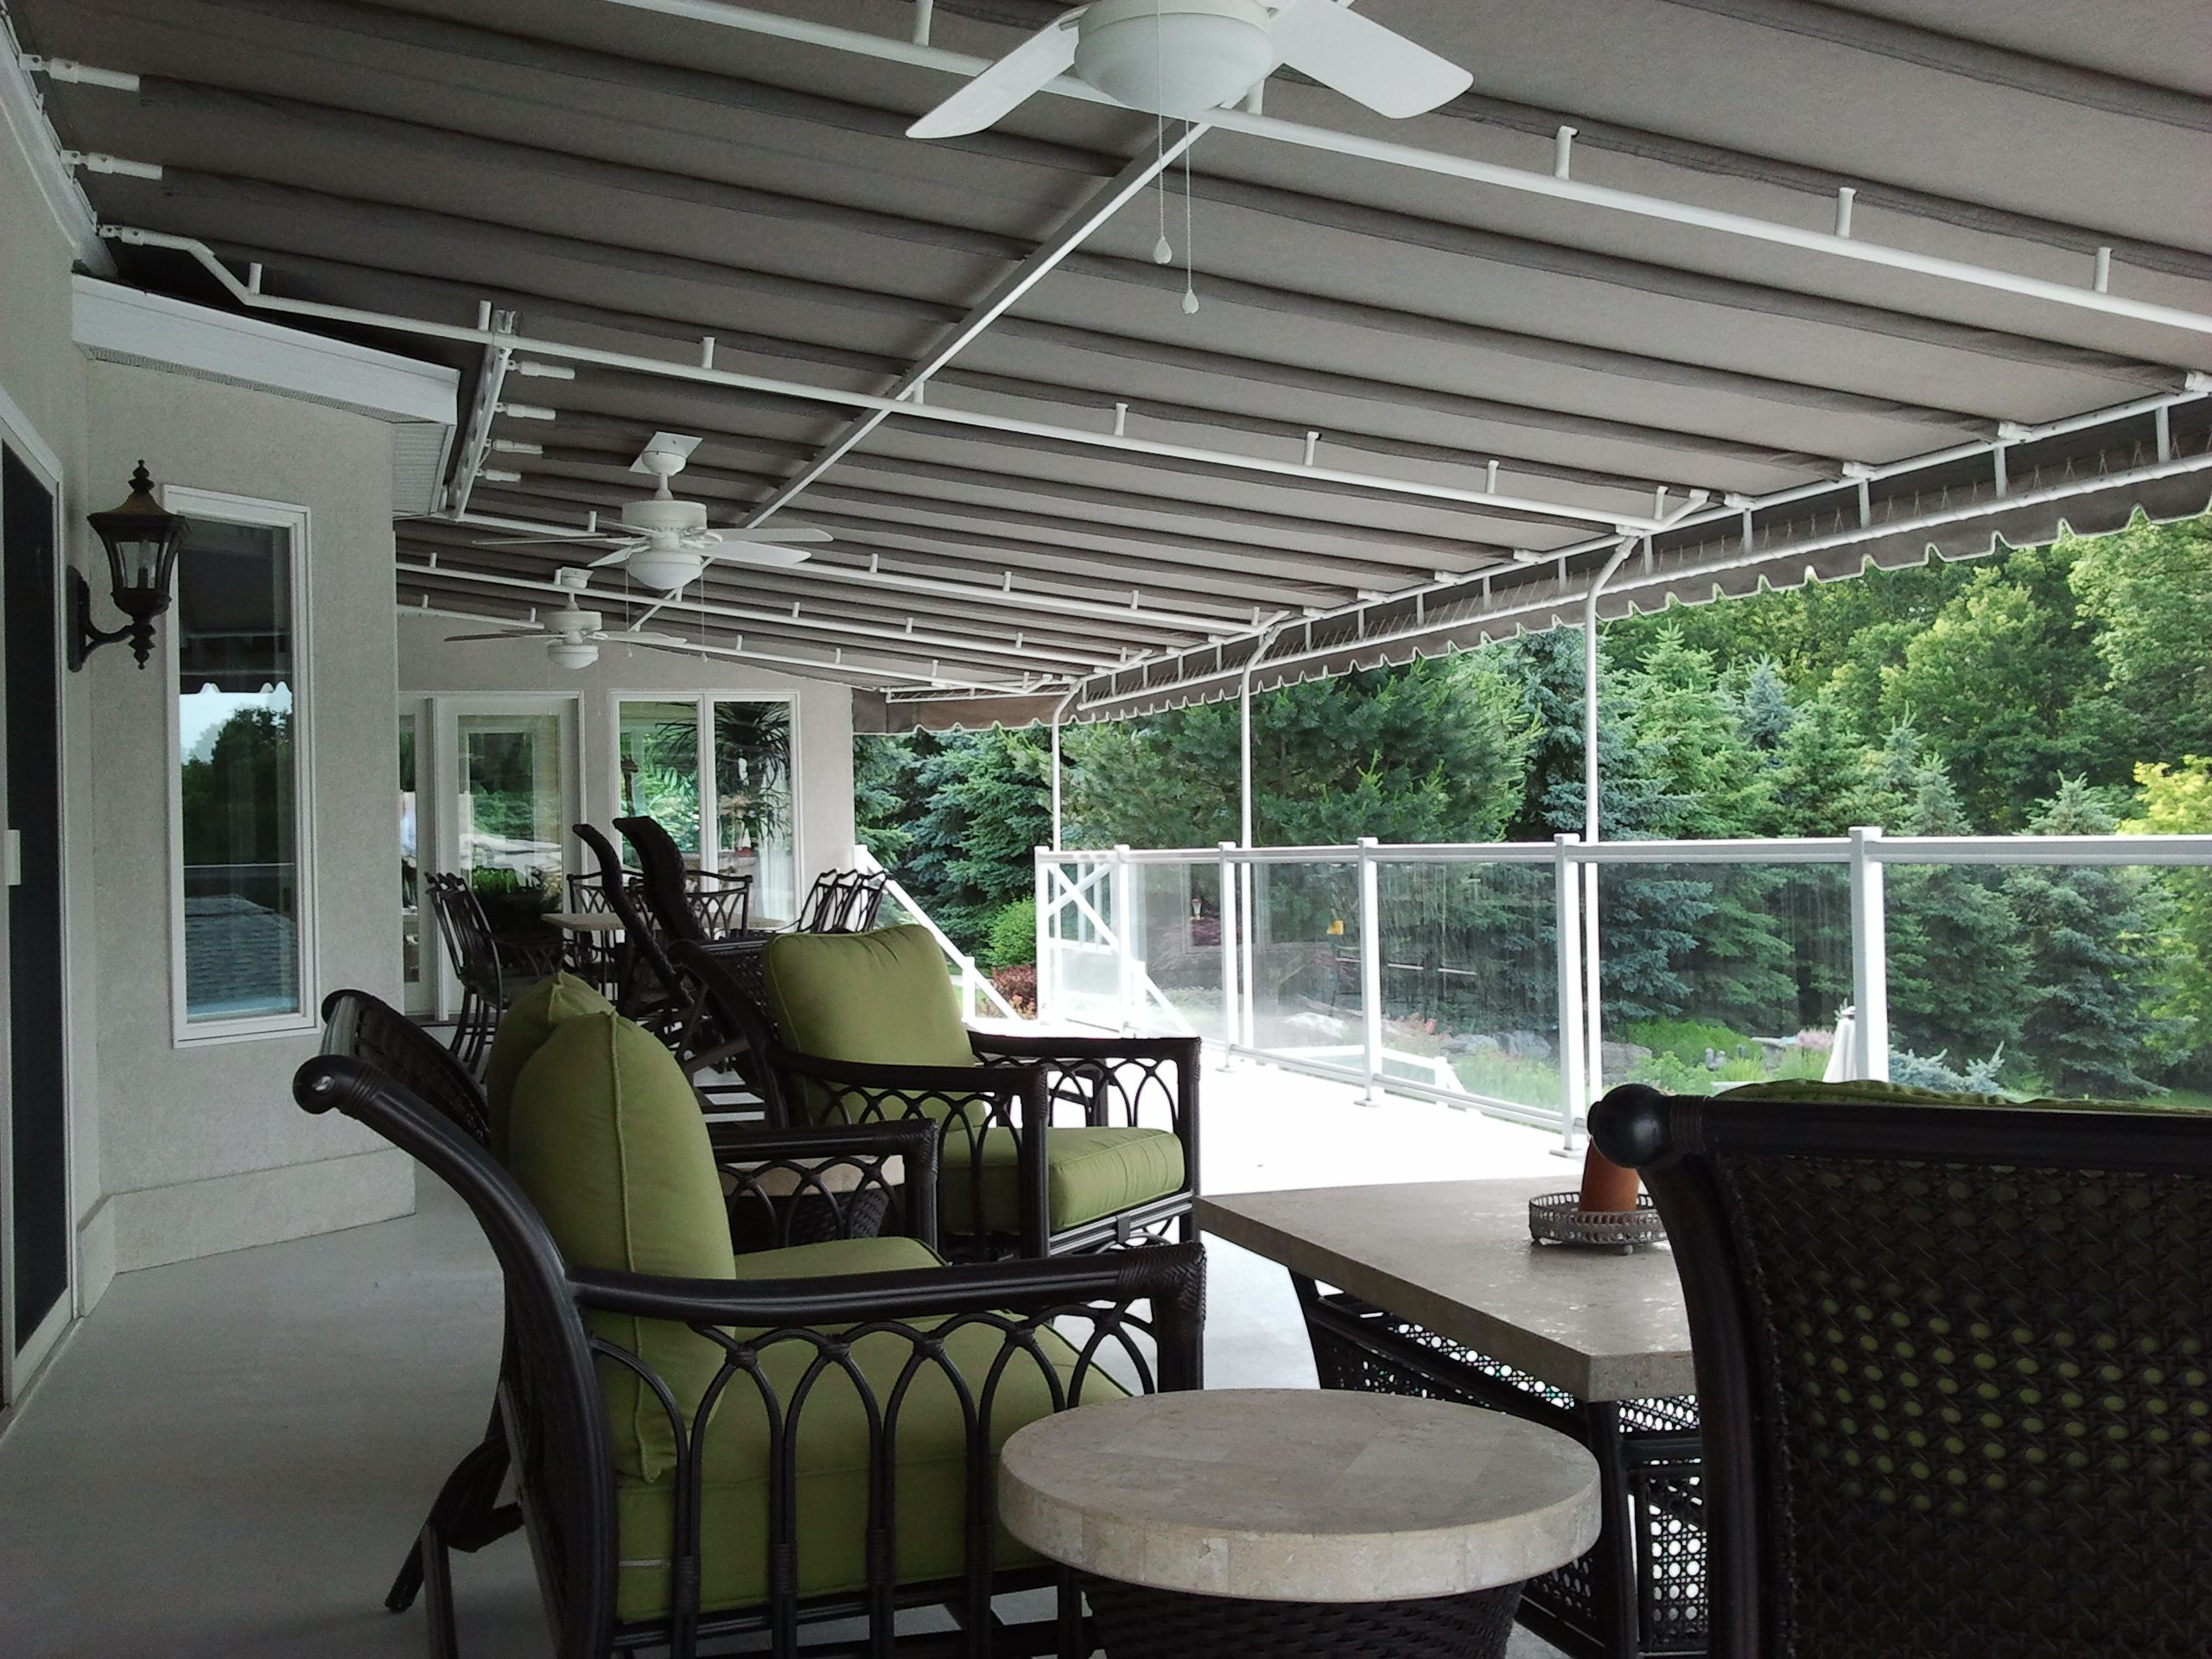 com to image for build stationary deck decks lowes awnings cakegirlkc of planning awning